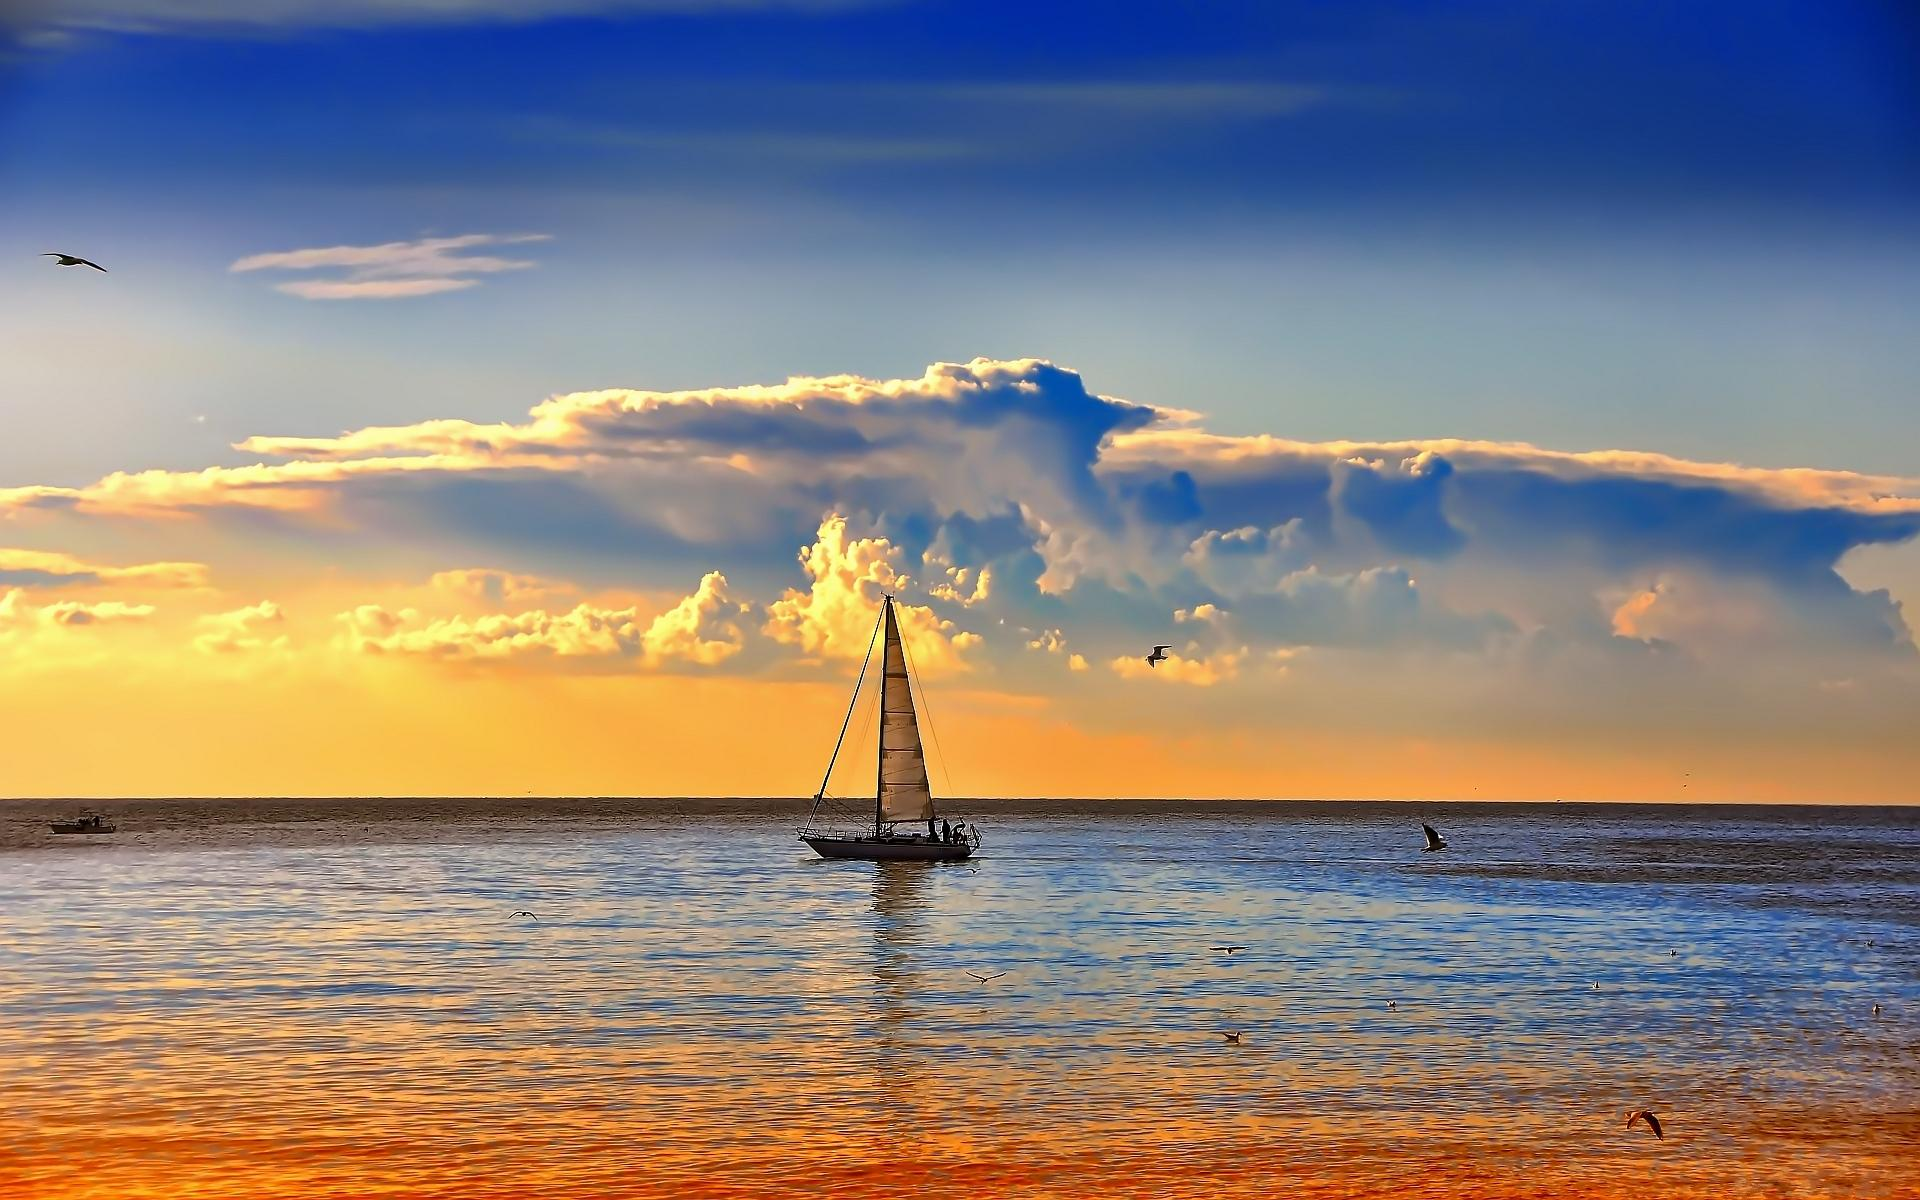 Sailboat Wallpaper 7774 1920x1200 px